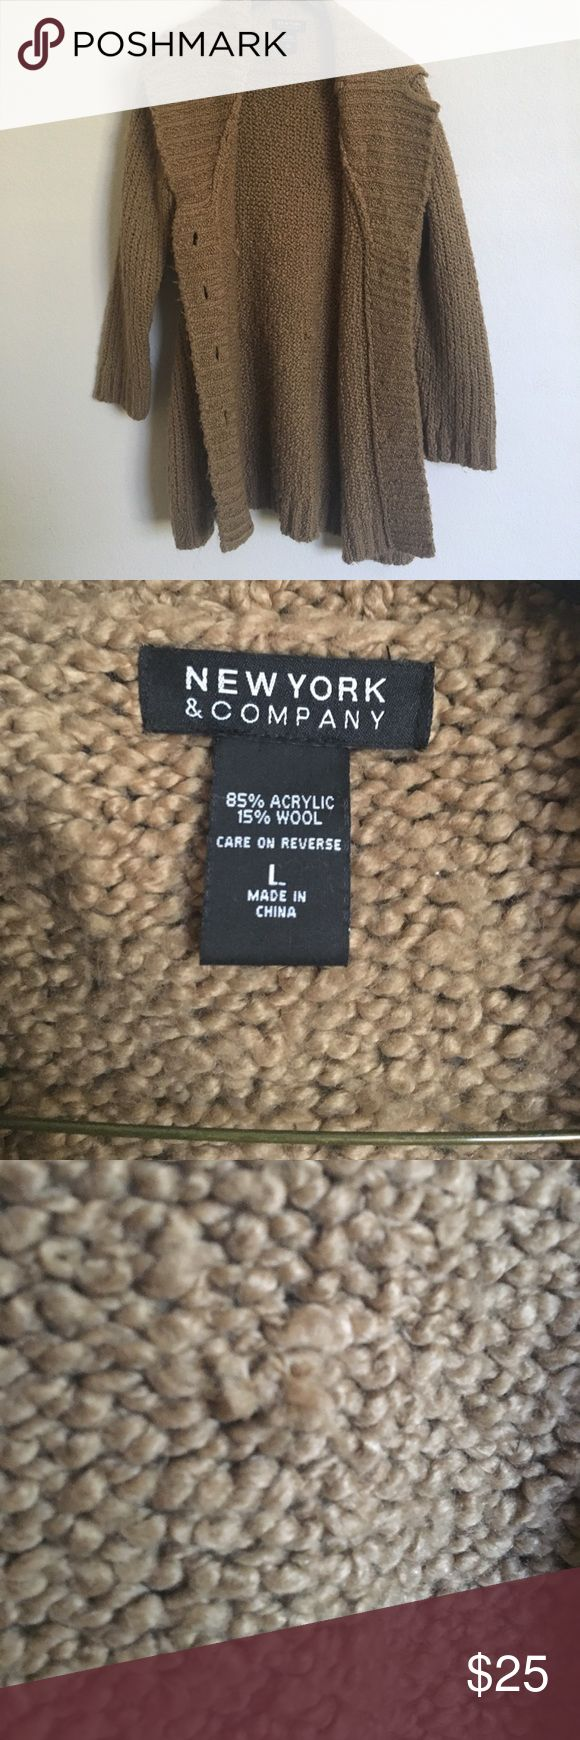 """New York & Co. long cardigan 15% wool so very warm • pretty thick knit • preloved so there is piling as well as some knots shown in pic 3 and 4, due to slight pull in fabric • no pockets • I'm 5'4"""" so the length of the cardigan hits me mid thigh • New York & Company Sweaters Cardigans"""